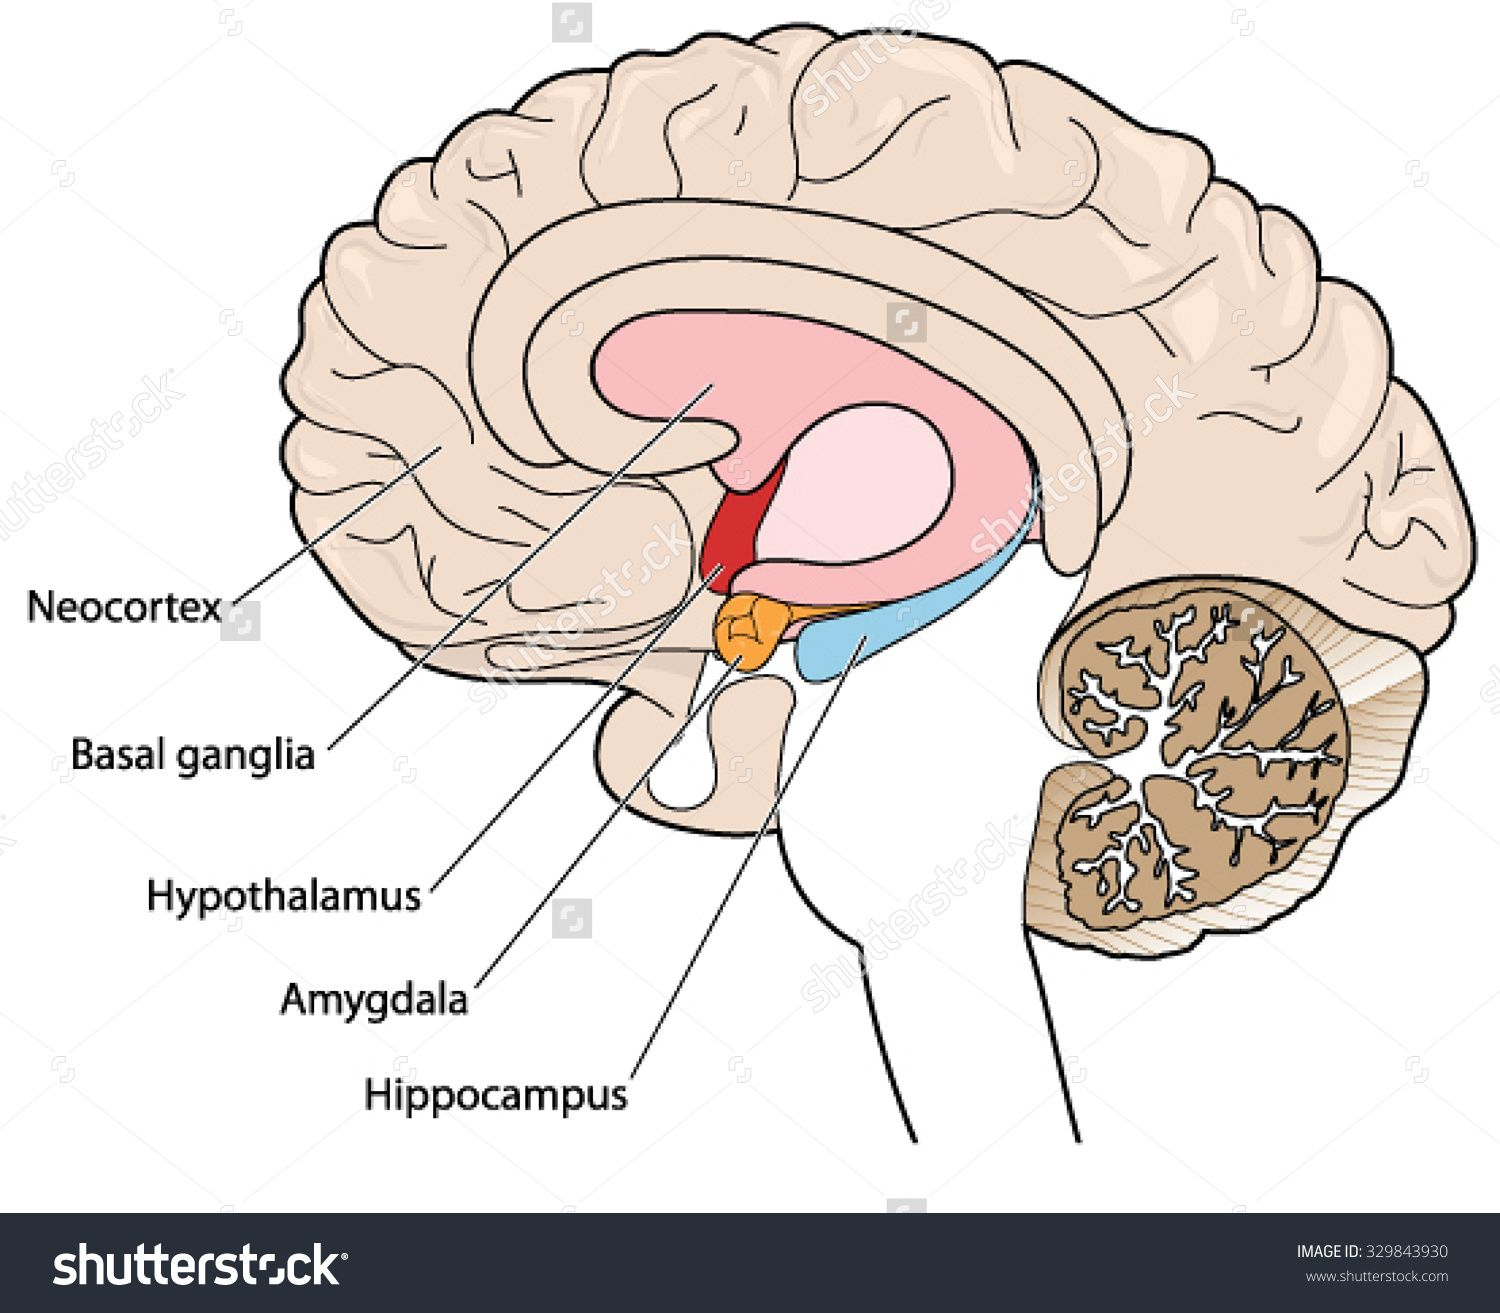 Magnificent Amygdala Mri Anatomy Collection - Anatomy Ideas - yunoki ...